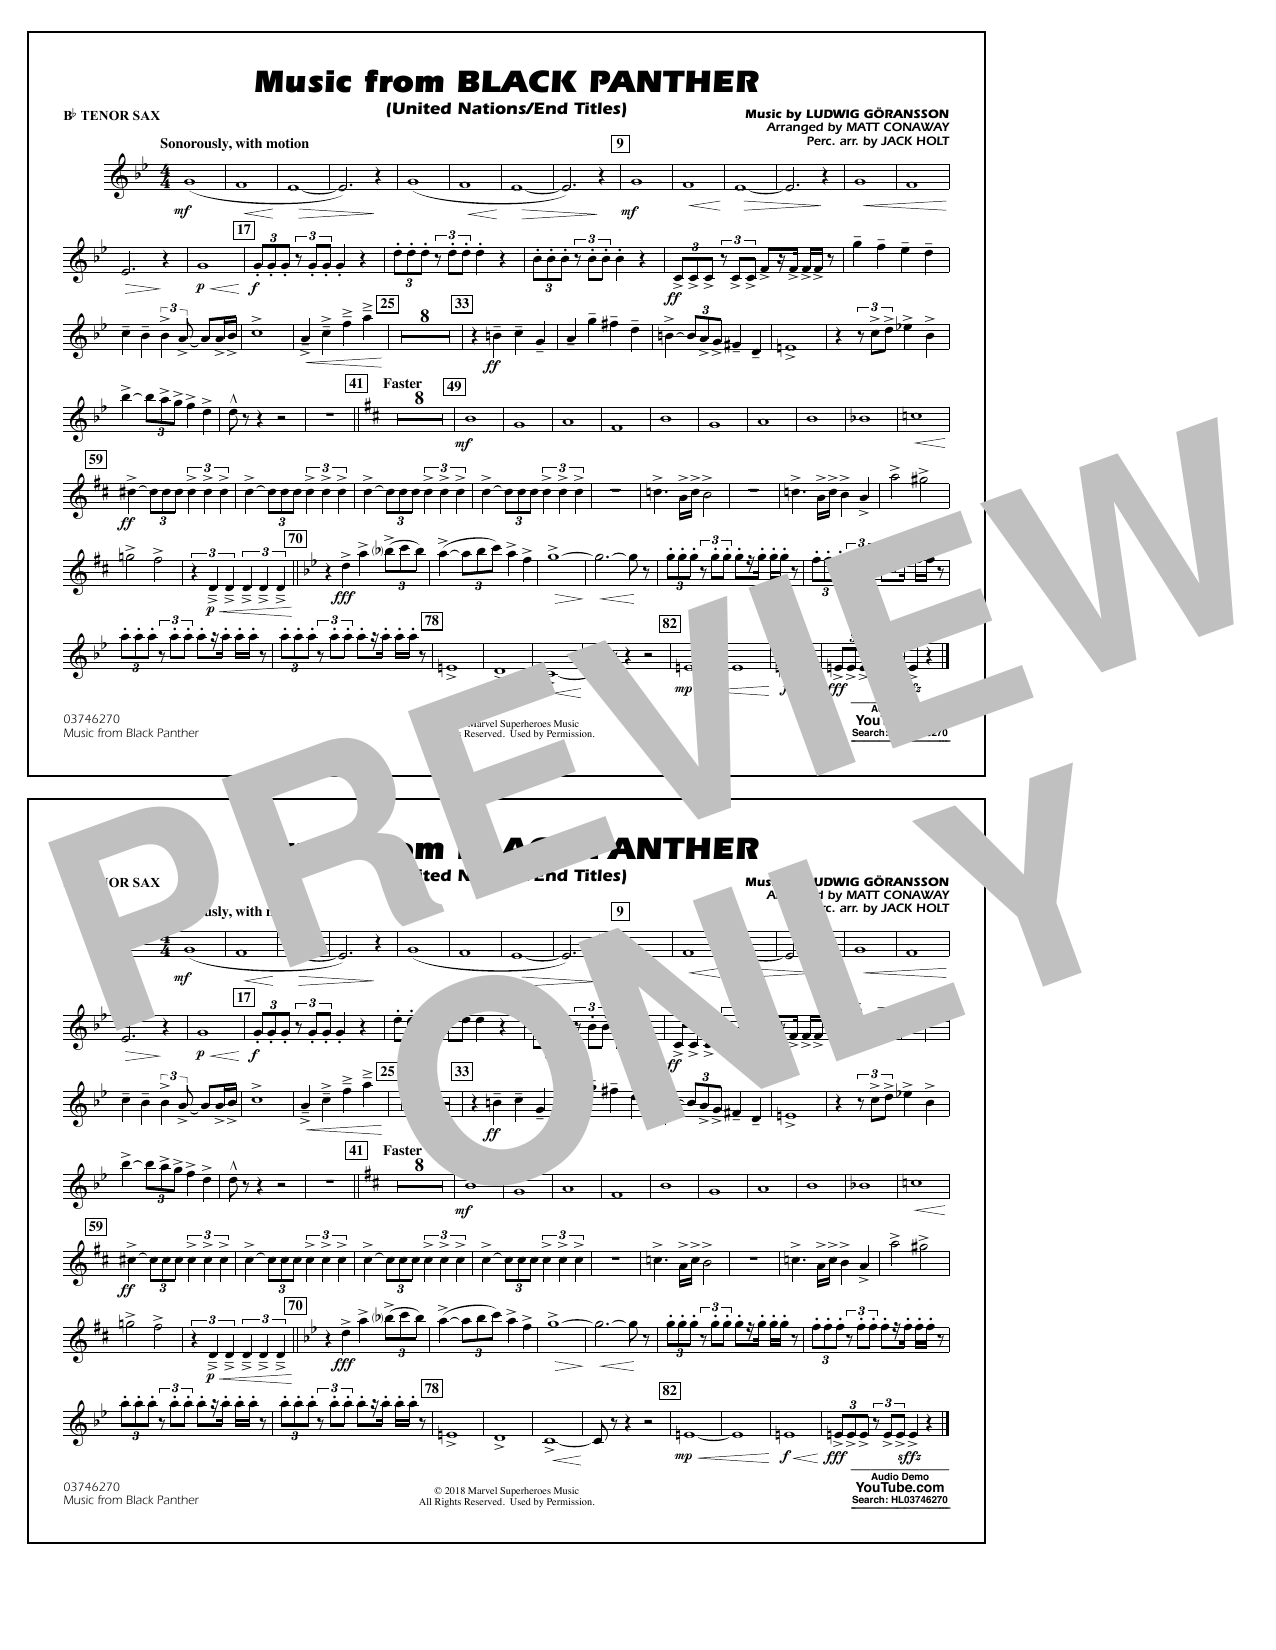 Music from Black Panther (arr. Matt Conaway) - Bb Tenor Sax (Marching Band)